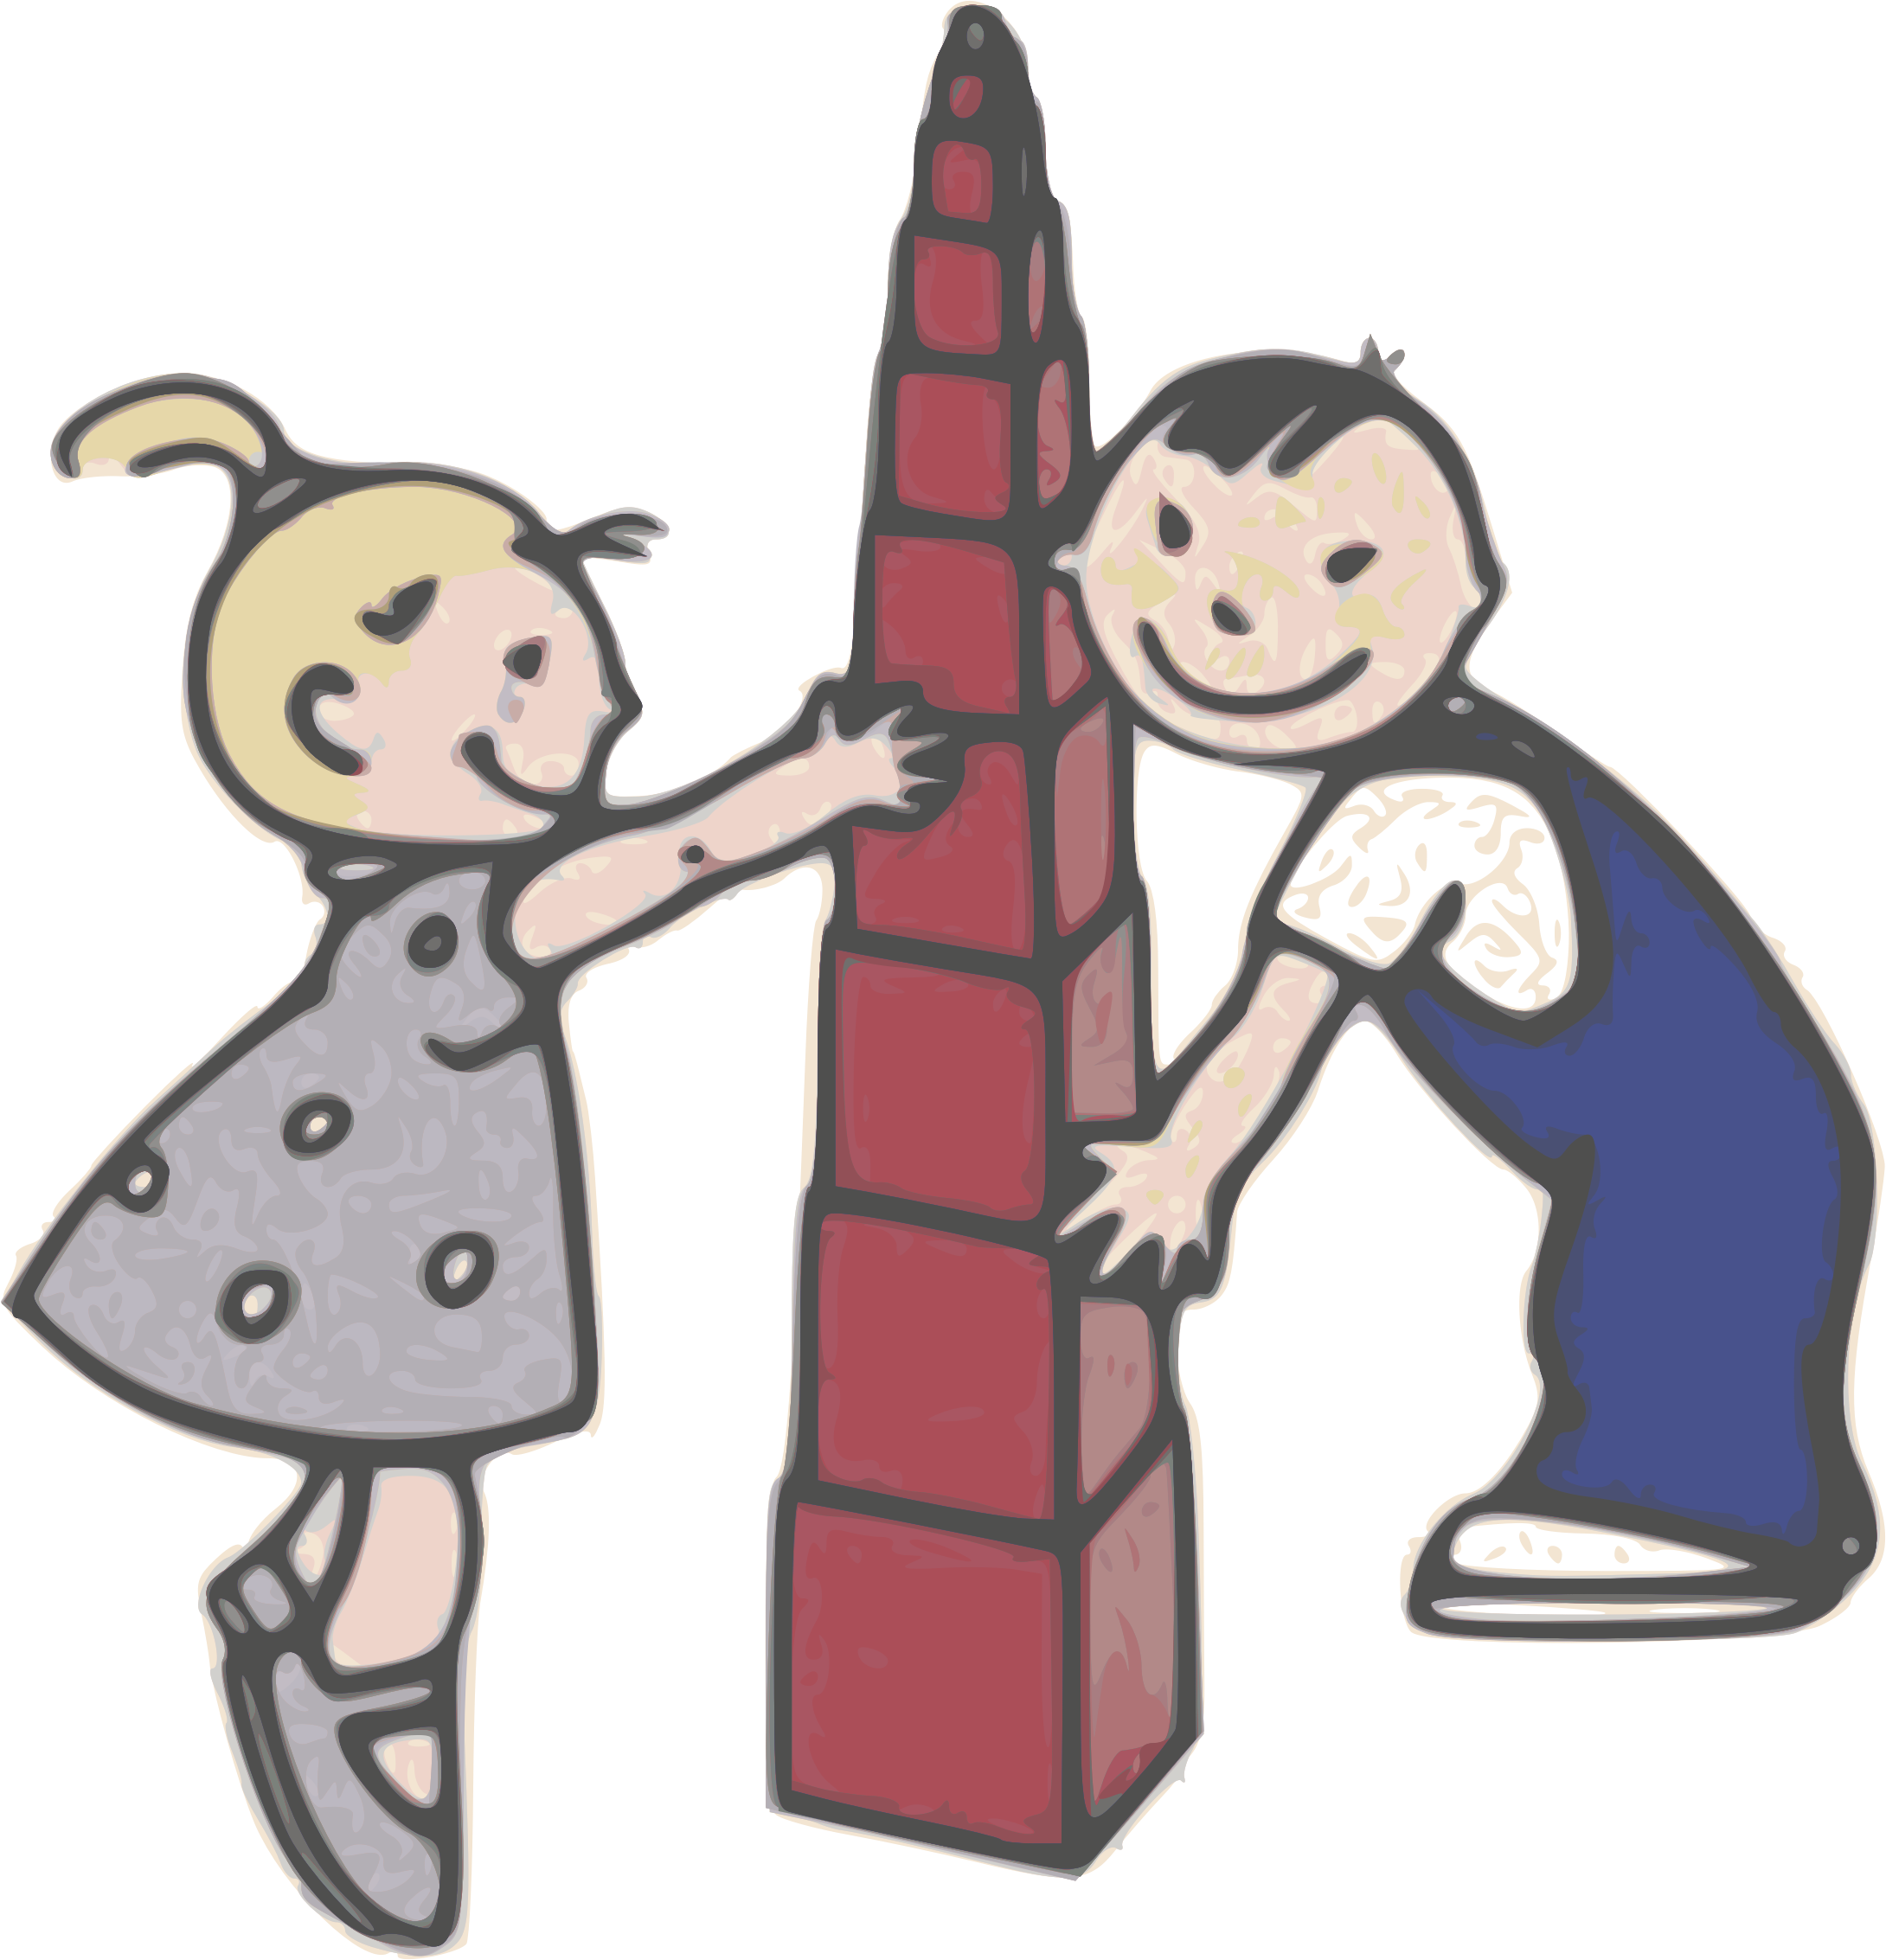 Blocks clipart toy kids sharing. Play with tower giancarlo